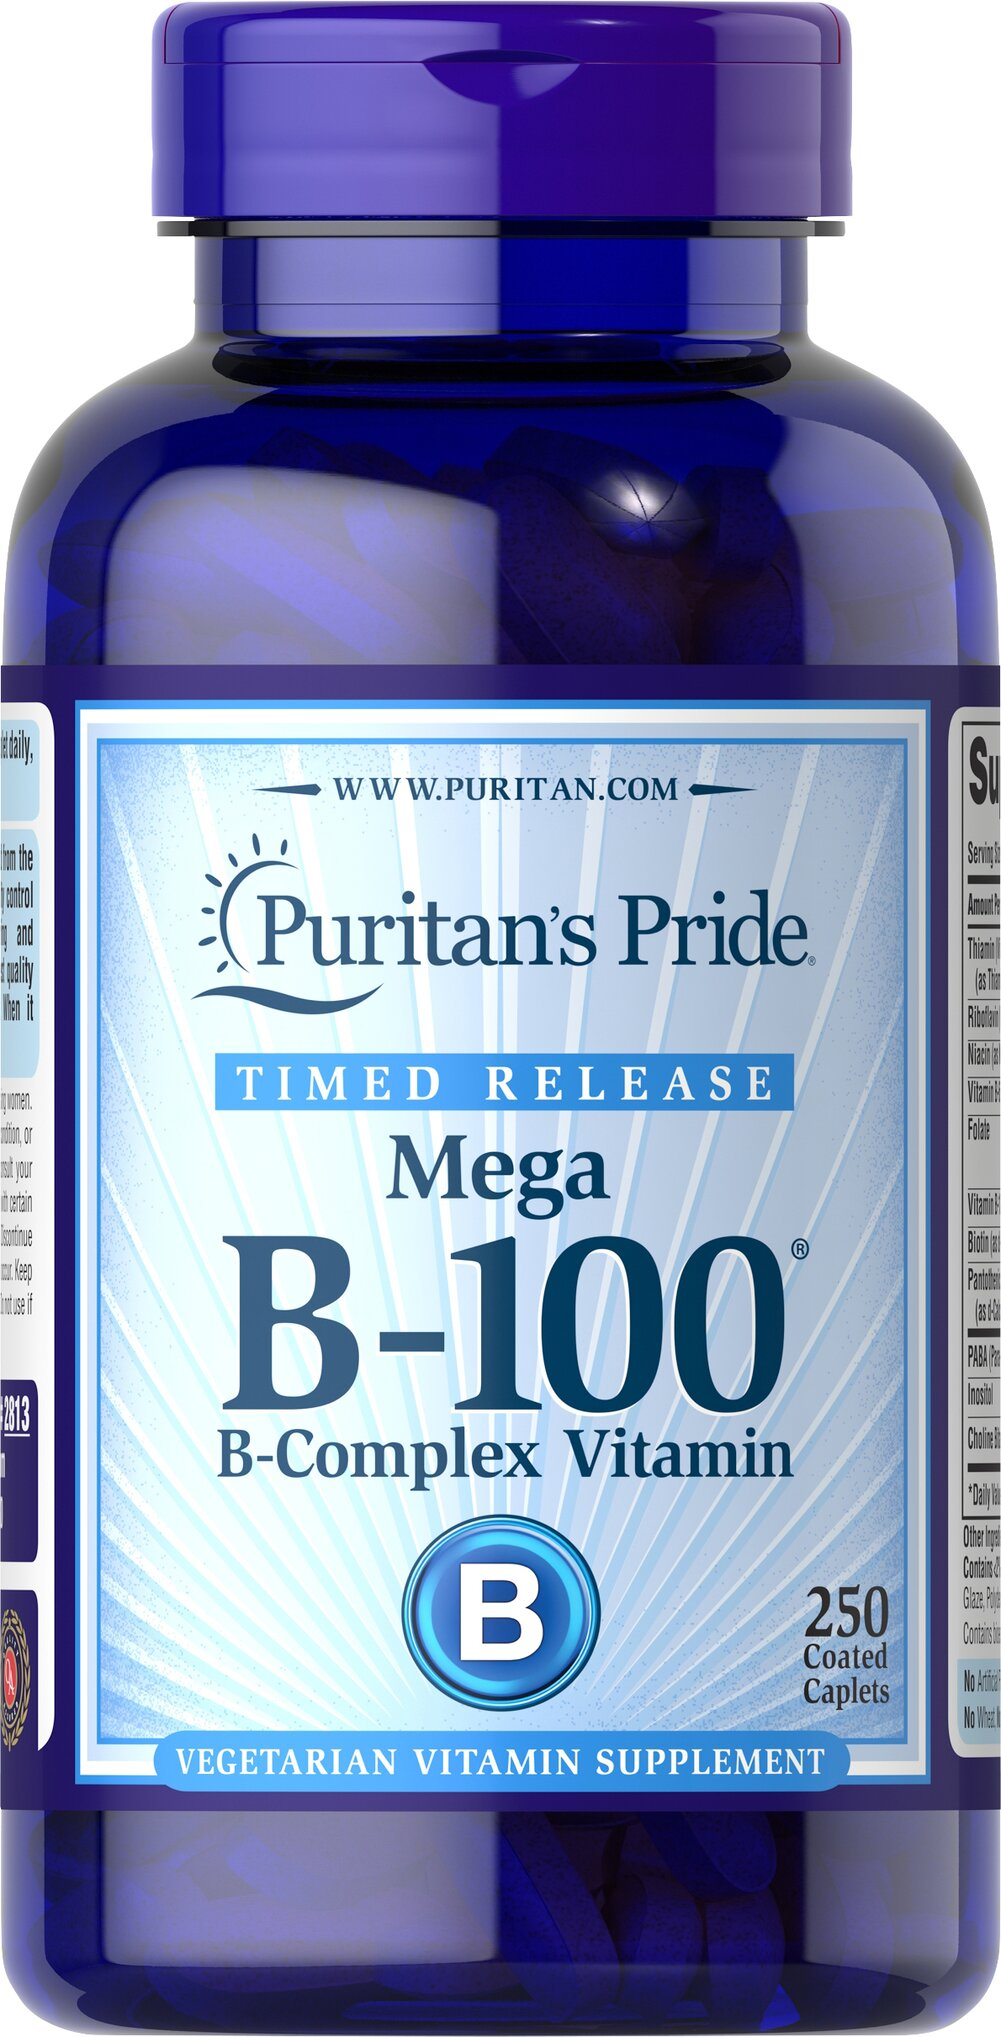 Vitamin B-100® Complex Timed Release <p>Each nutrient in the Vitamin B-100® Complex performs a unique role in maintaining proper metabolic functioning and is essential for well being.** When taken together in a complex formula, the B Vitamins help to maintain the health of the nervous system, skin, eyes and hair.** This product is specially formulated to provide a gradual release of vitamins over a prolonged period of time.</p>  250 Tablets 100 mg $66.49